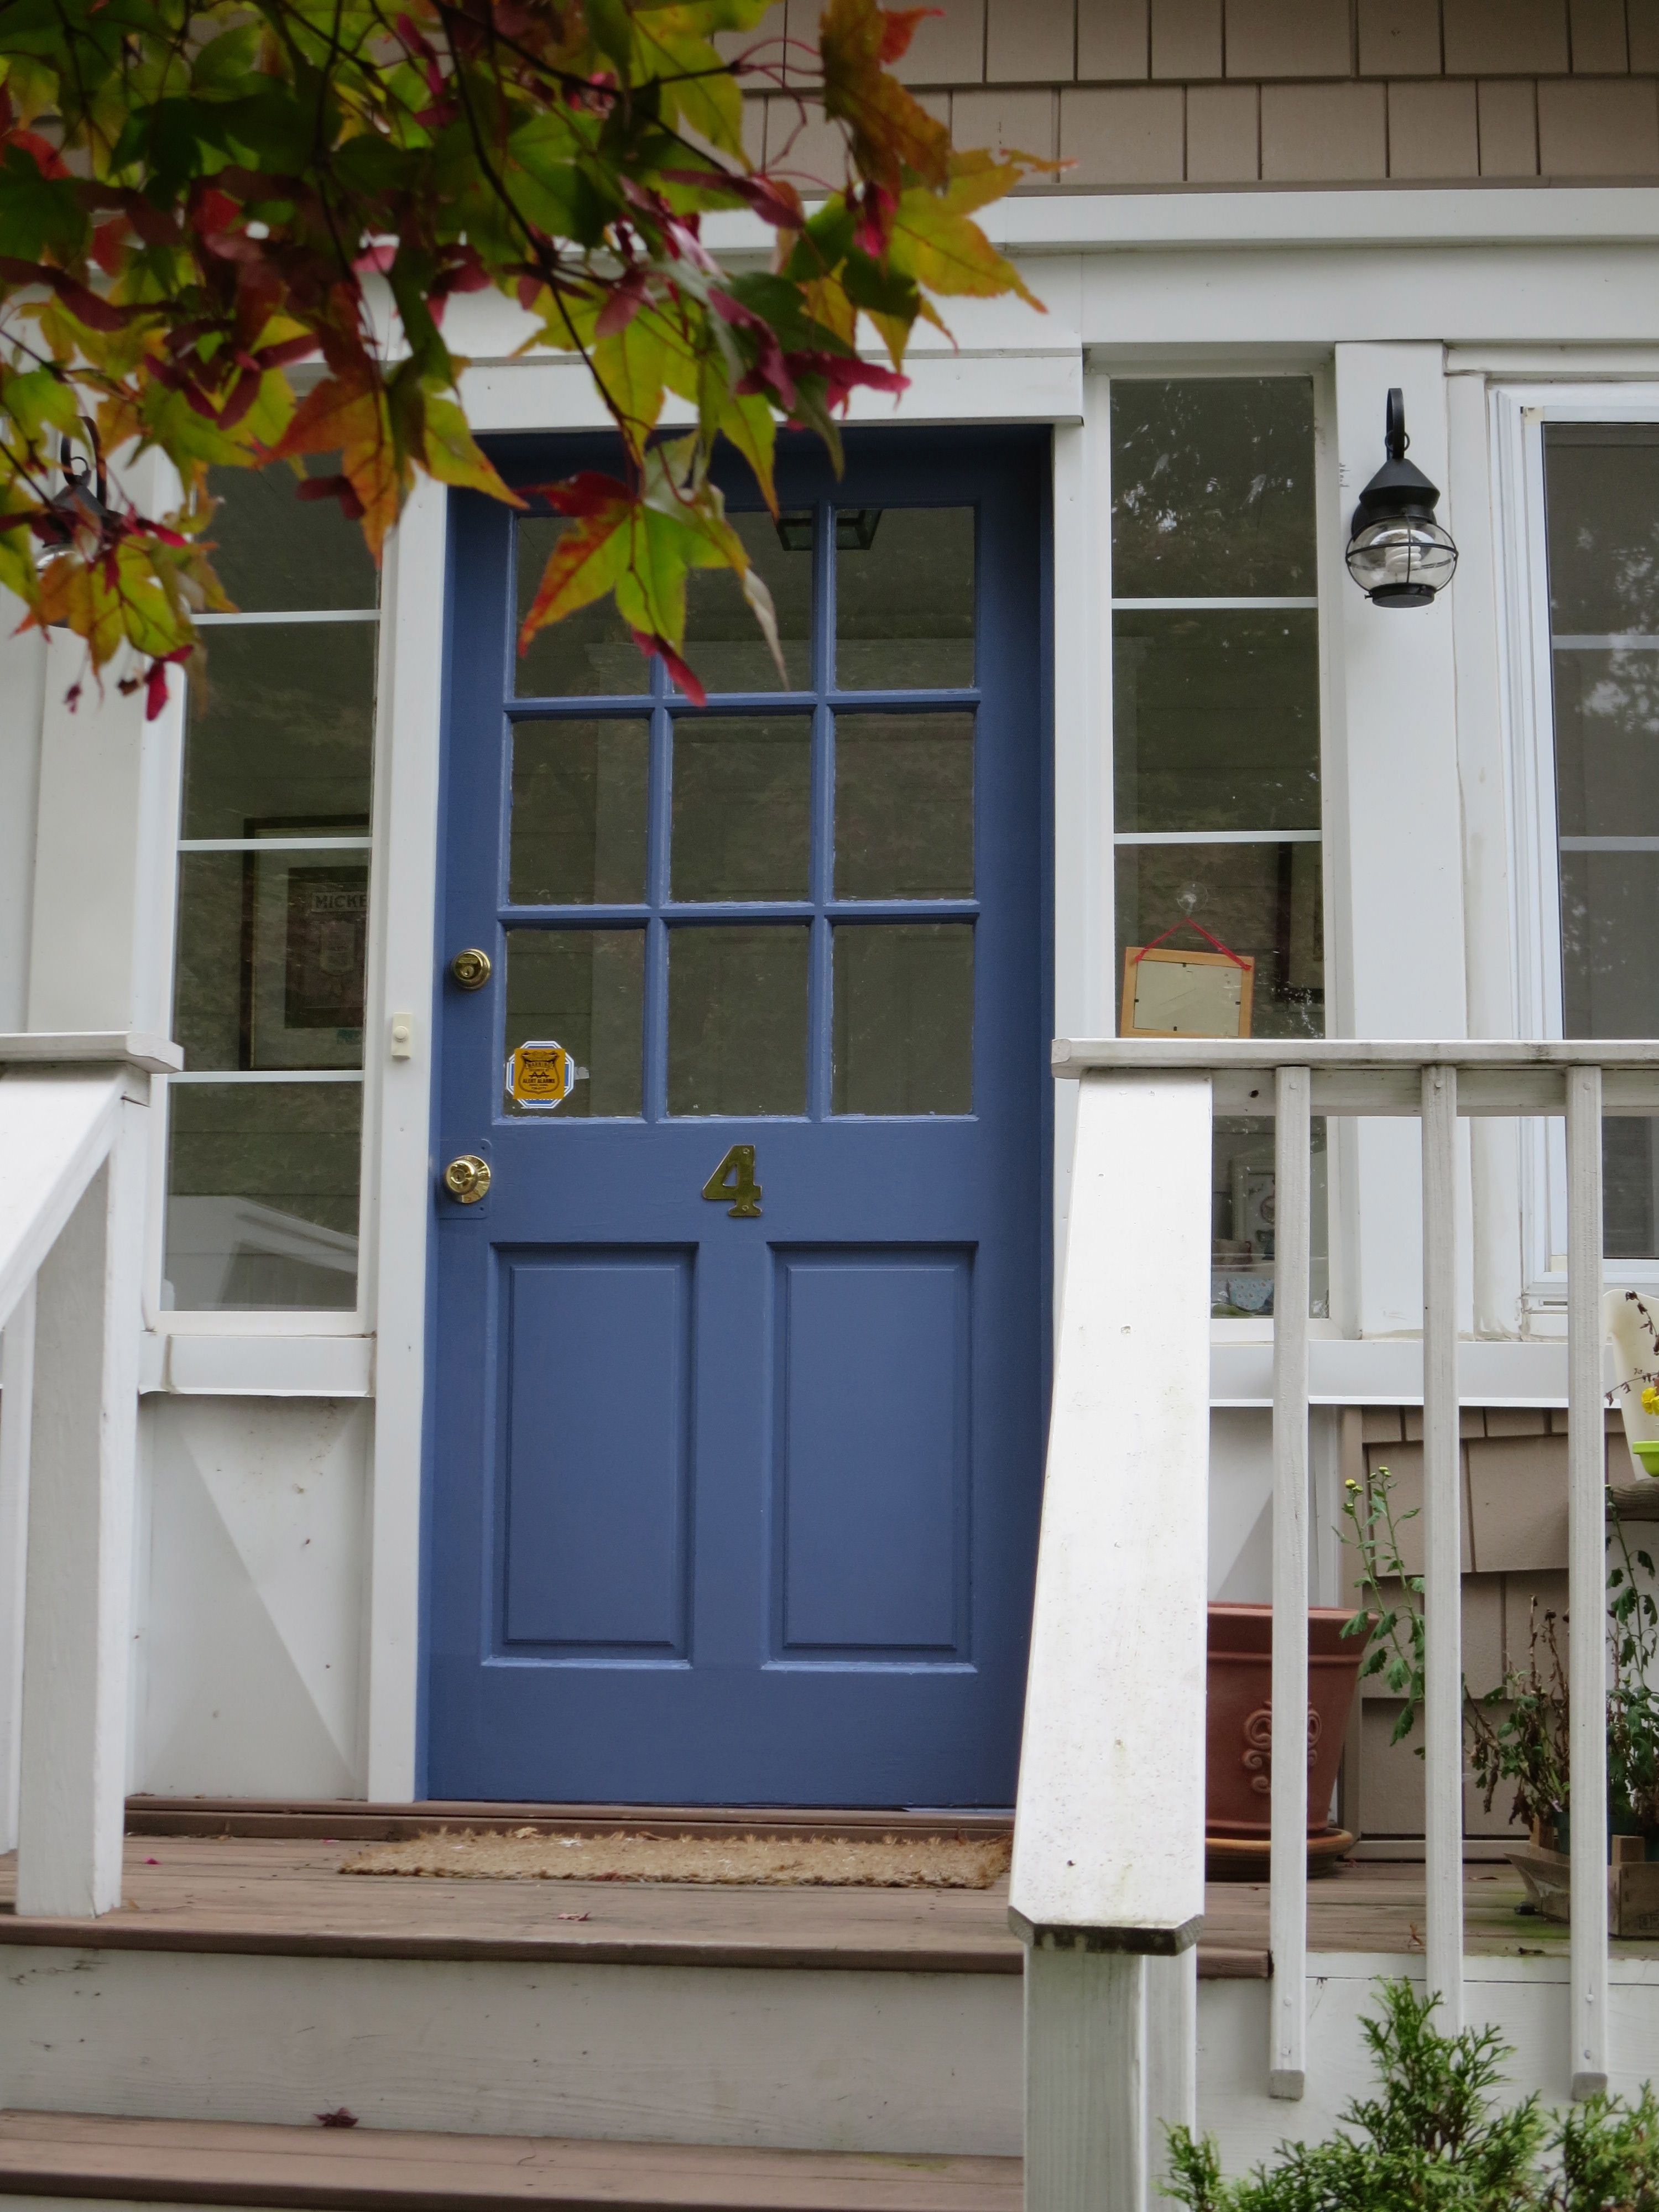 15 Shades Of Blue Front Door Designs To Pretty Up Your Home